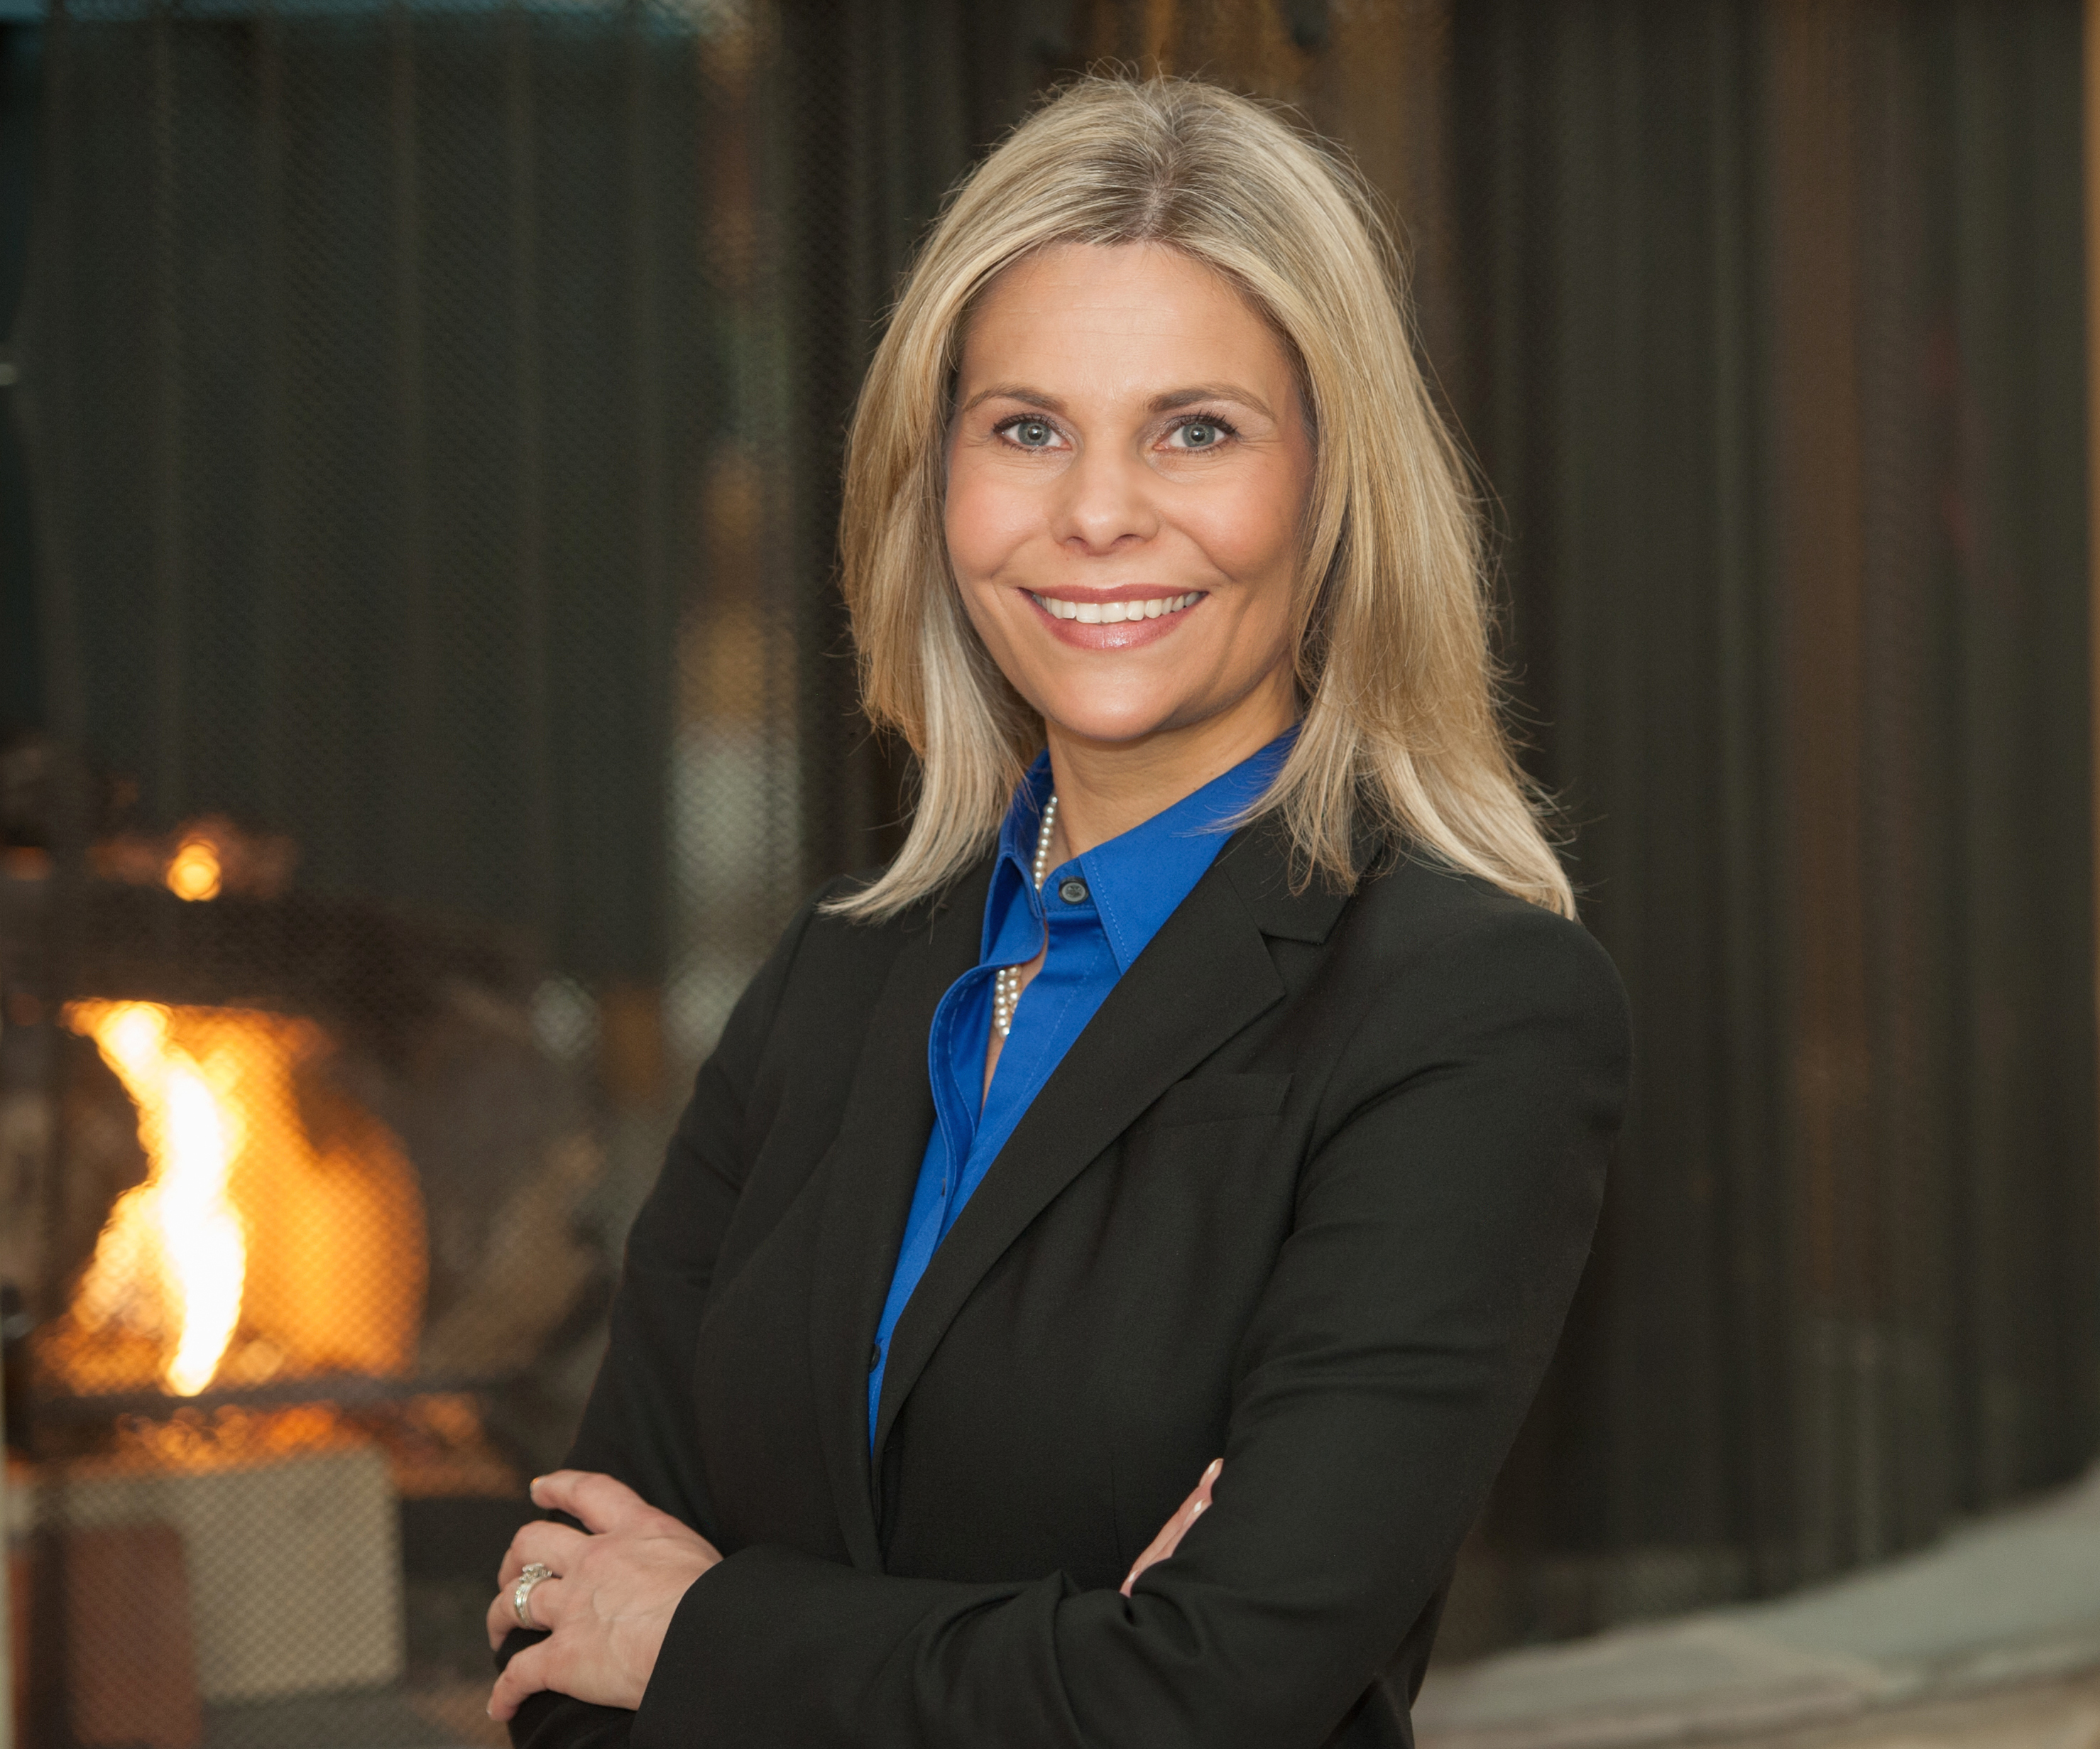 Jennie Lucca, CEO of The Children's Inn